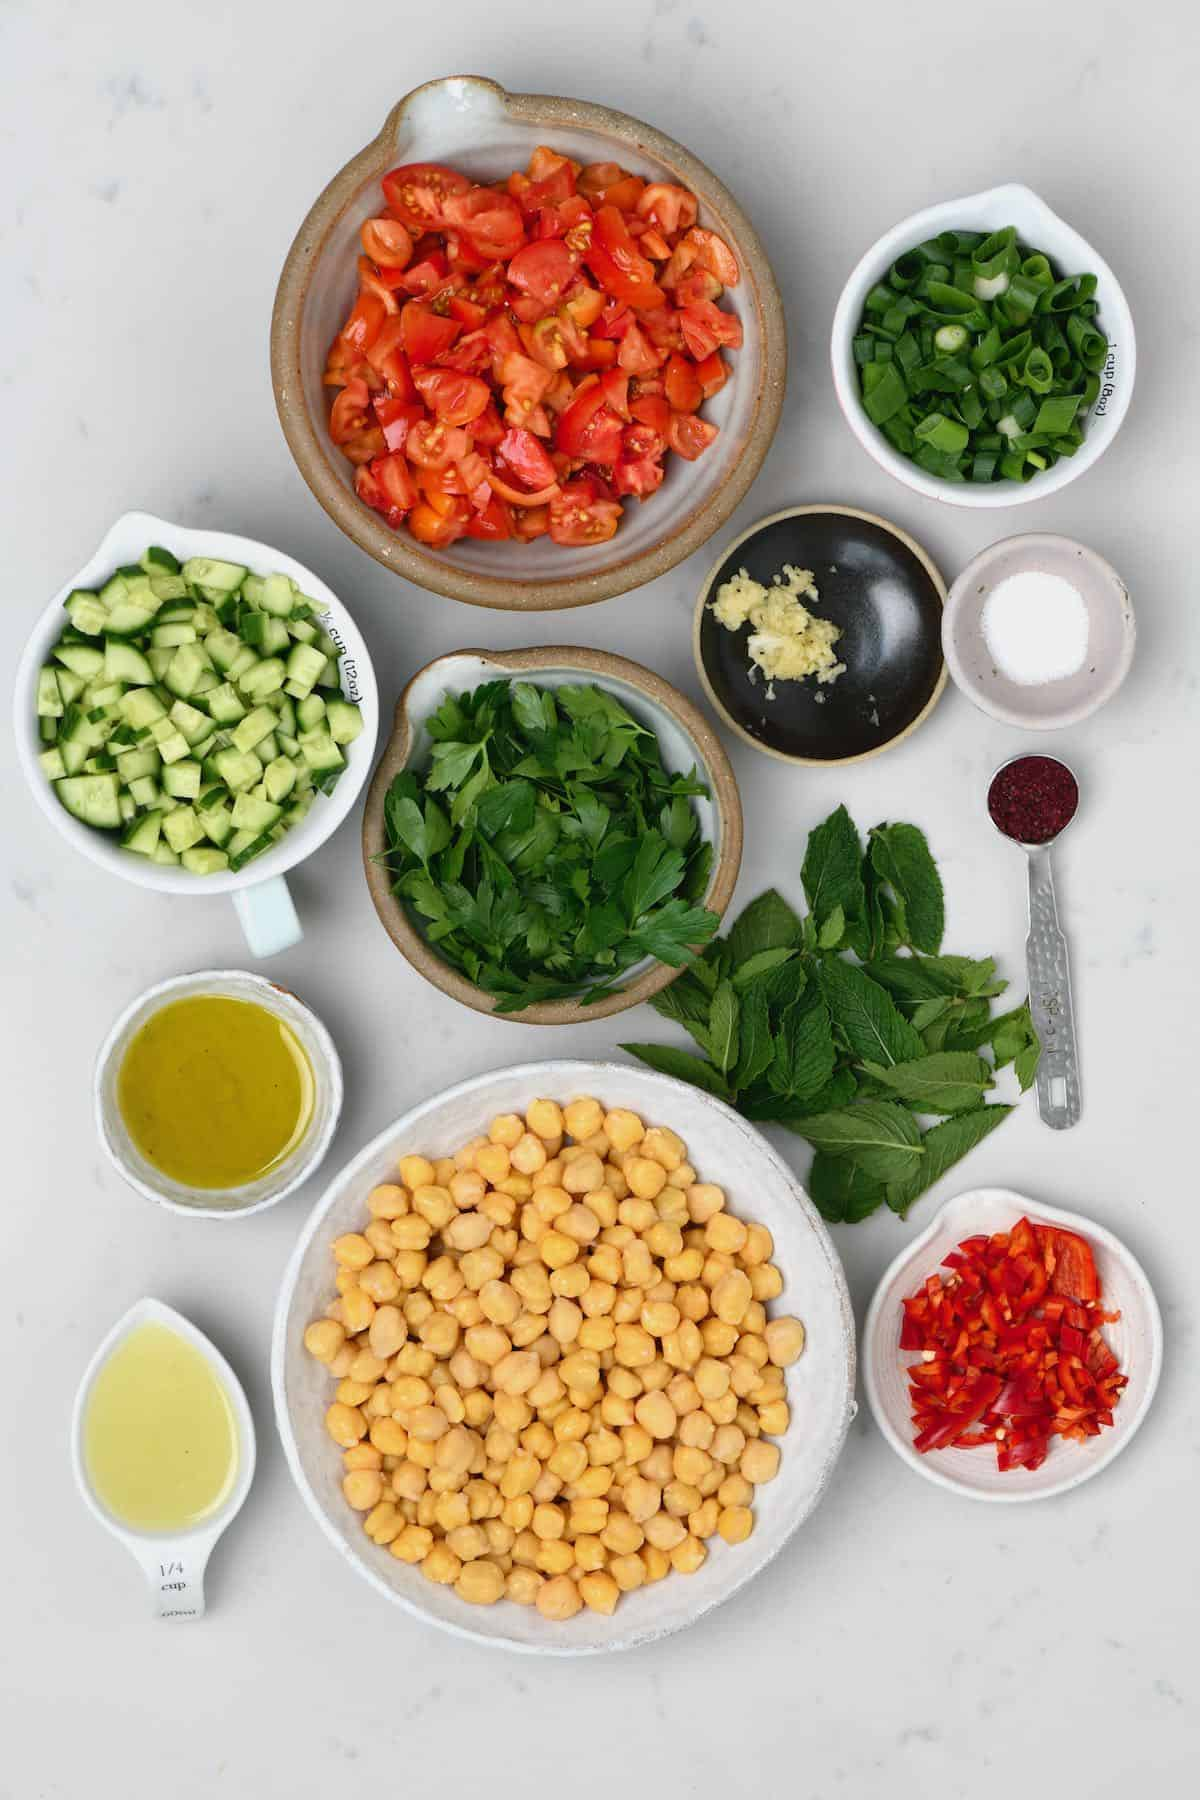 Chopped ingredients for chickpea salad